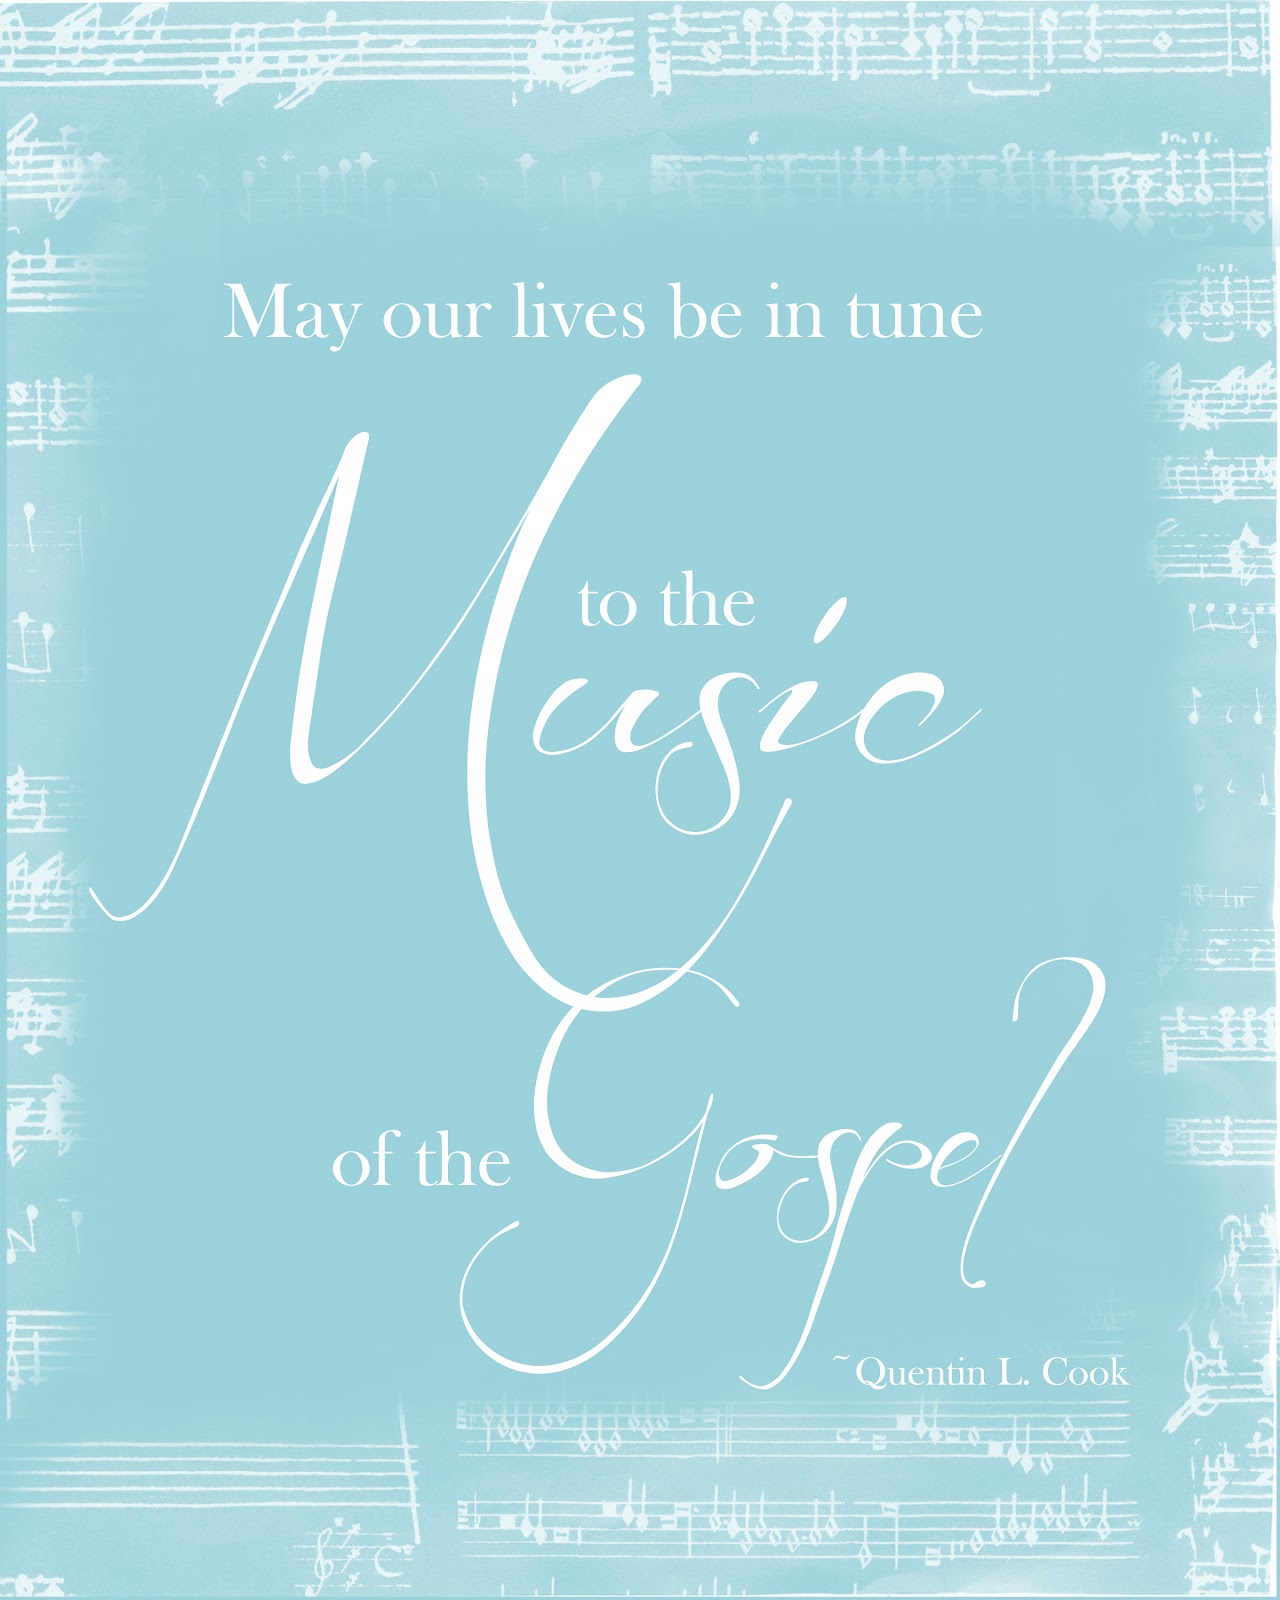 Quotes Music General Conference April 2012 Free Printable Quote Music Of The